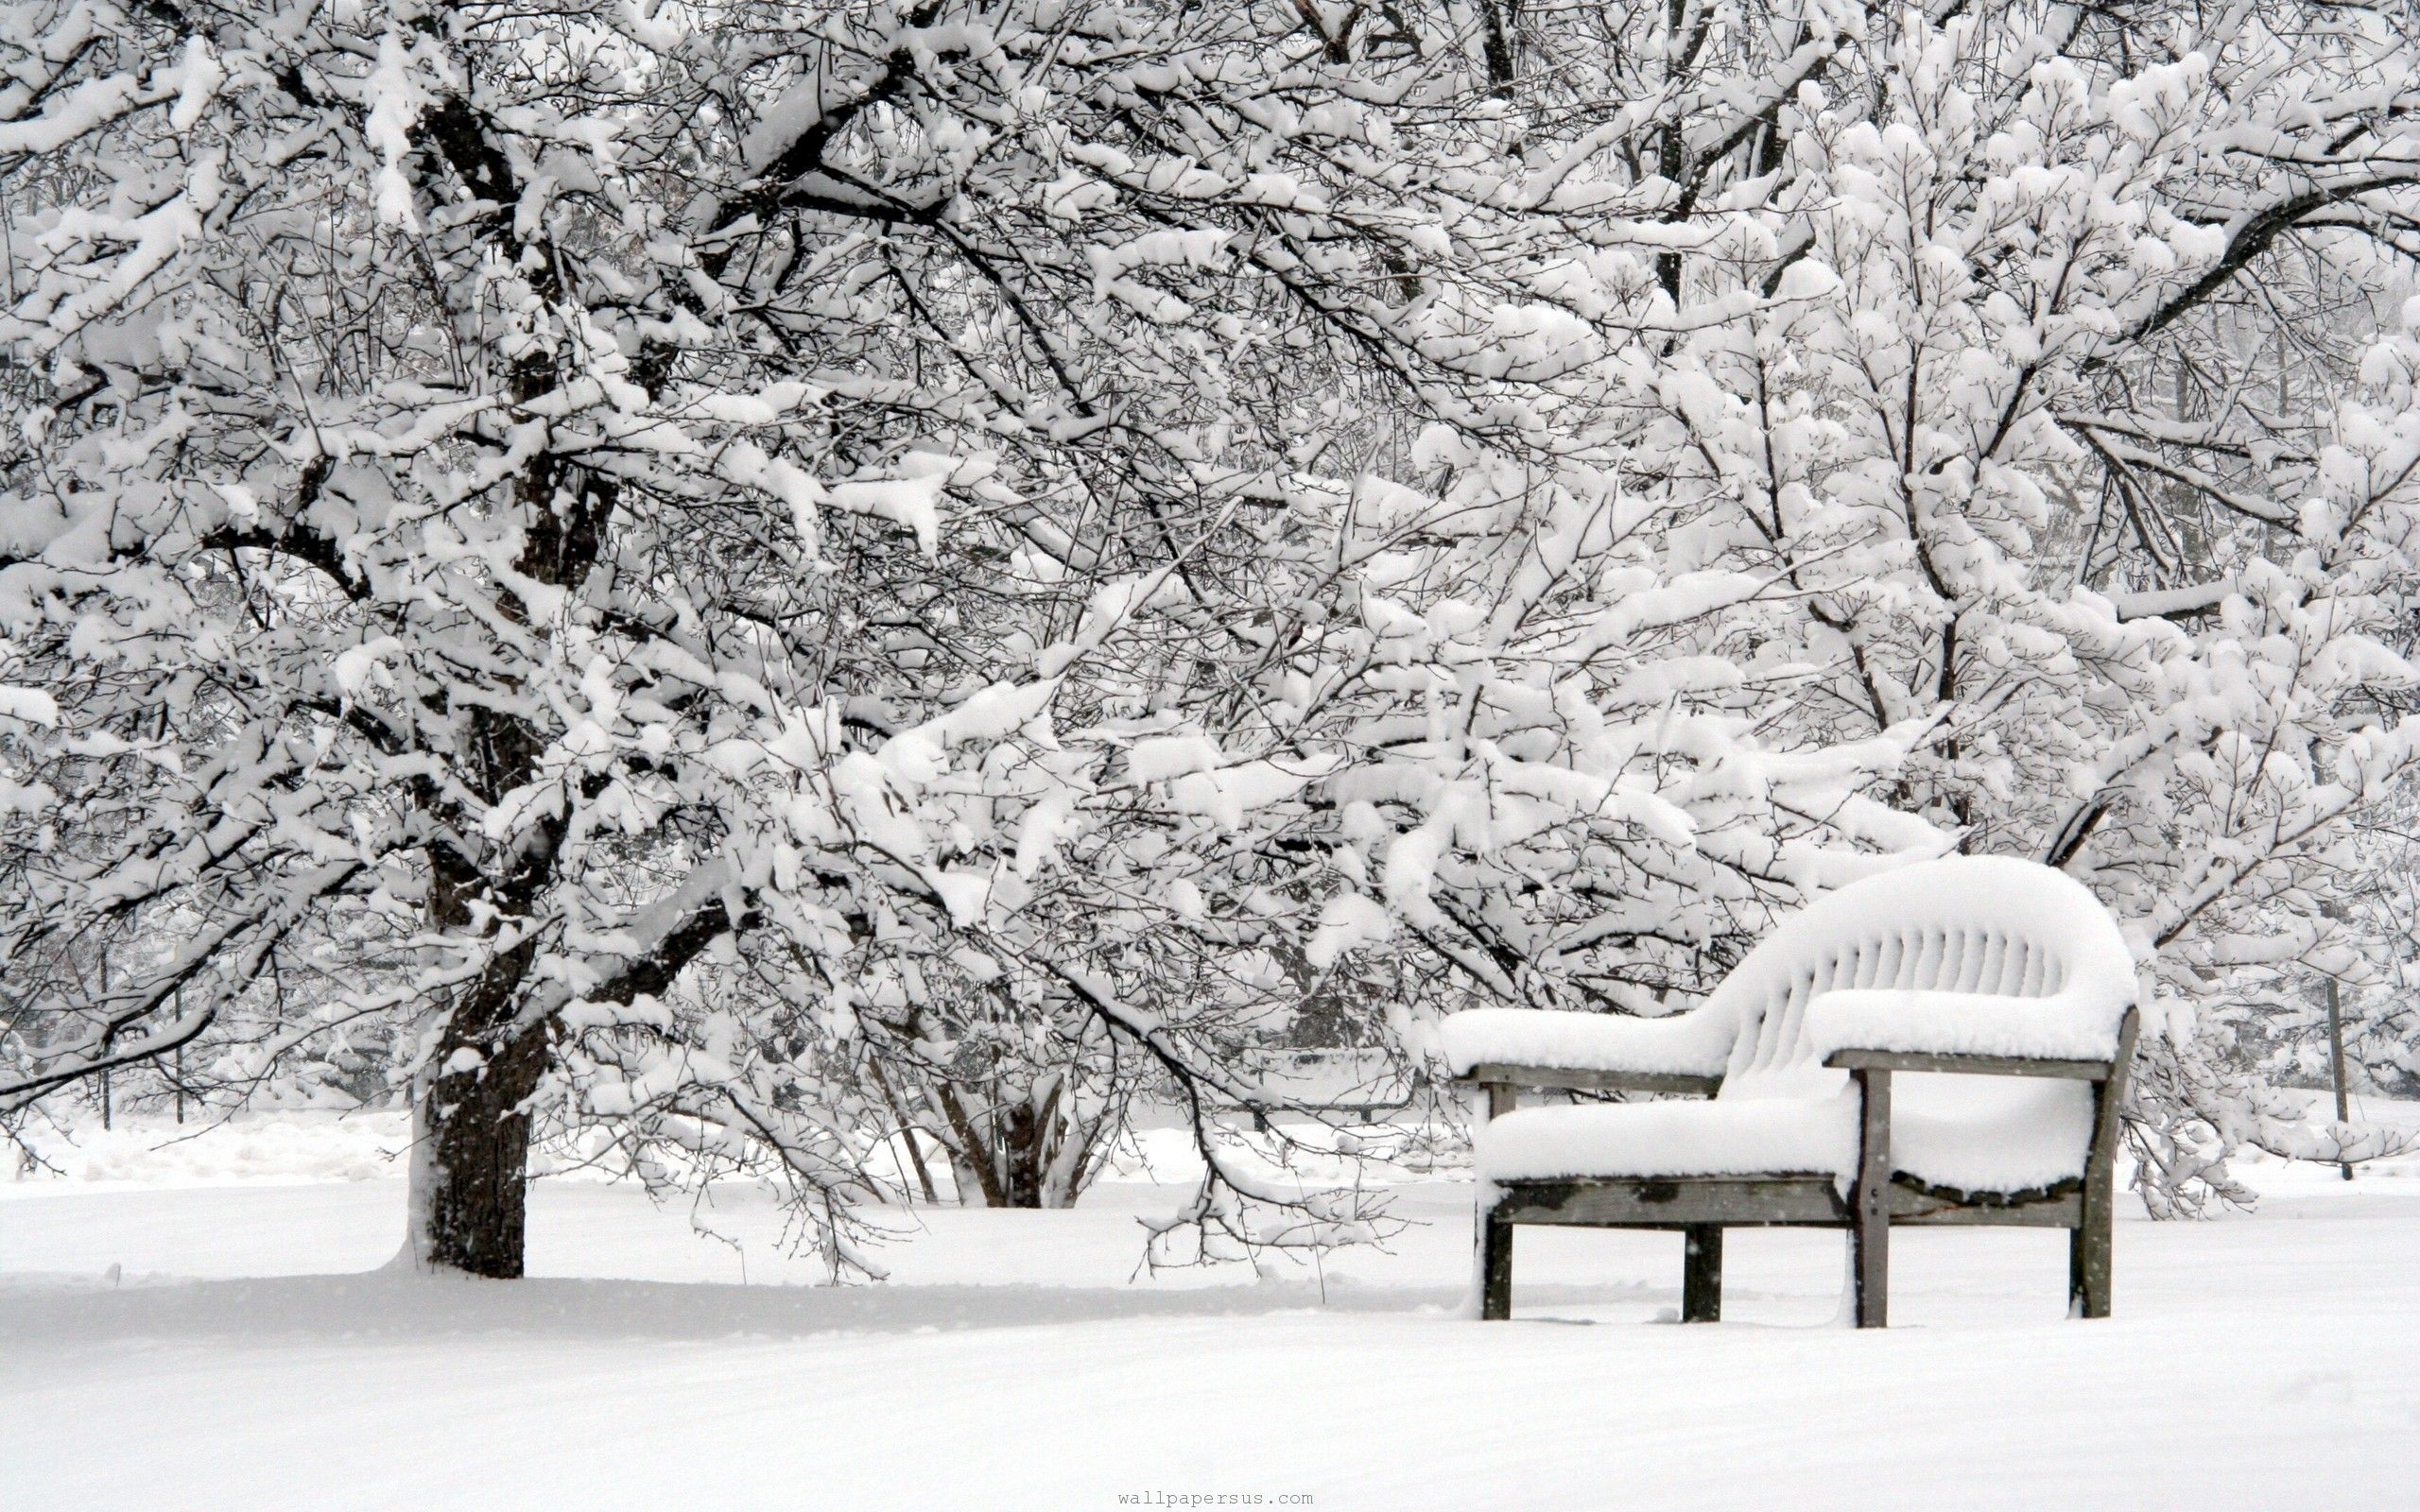 beautiful snow falling pictures*~~* - virtual university of pakistan